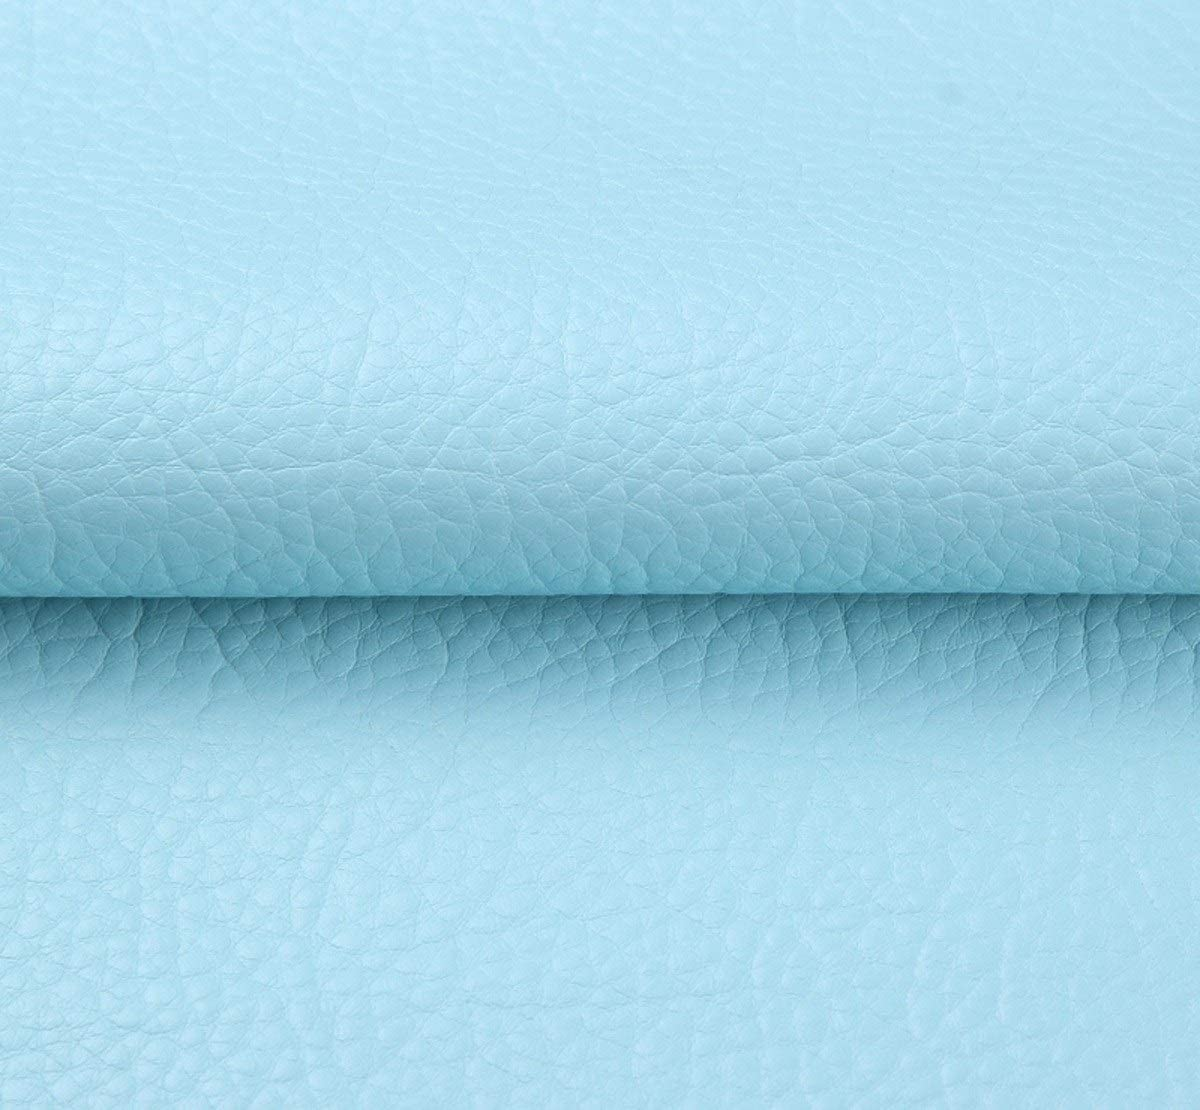 ZDFTCW Soft Philadelphia Mall Synthetic PU Fabric Fa Grained Sale Material Faux Leather